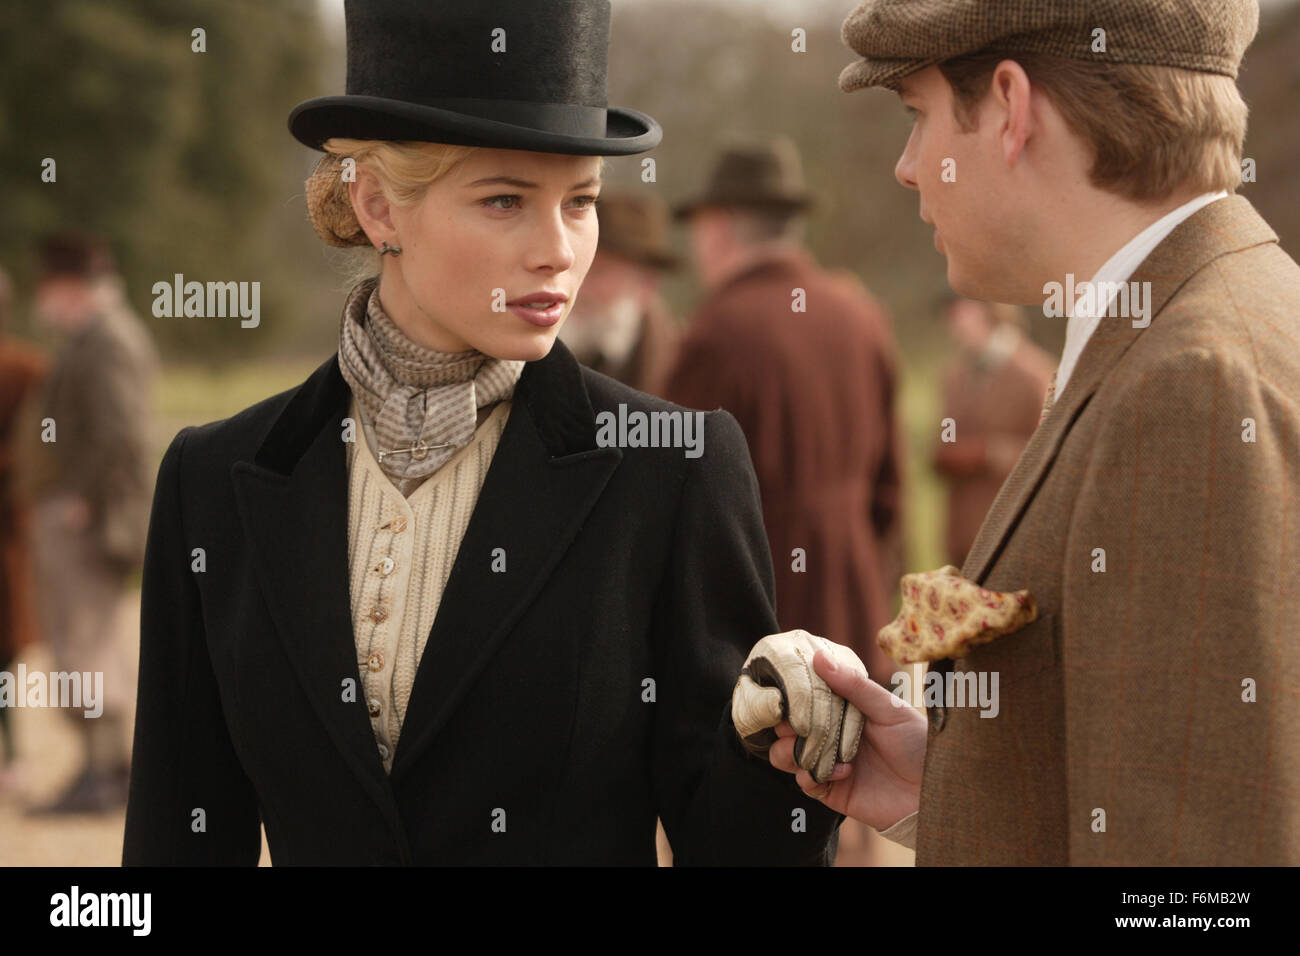 RELEASE DATE: May 22, 2009. MOVIE TITLE: Easy Virtue. STUDIO: Sony Pictures Classics. PLOT: A young Englishman marries - Stock Image